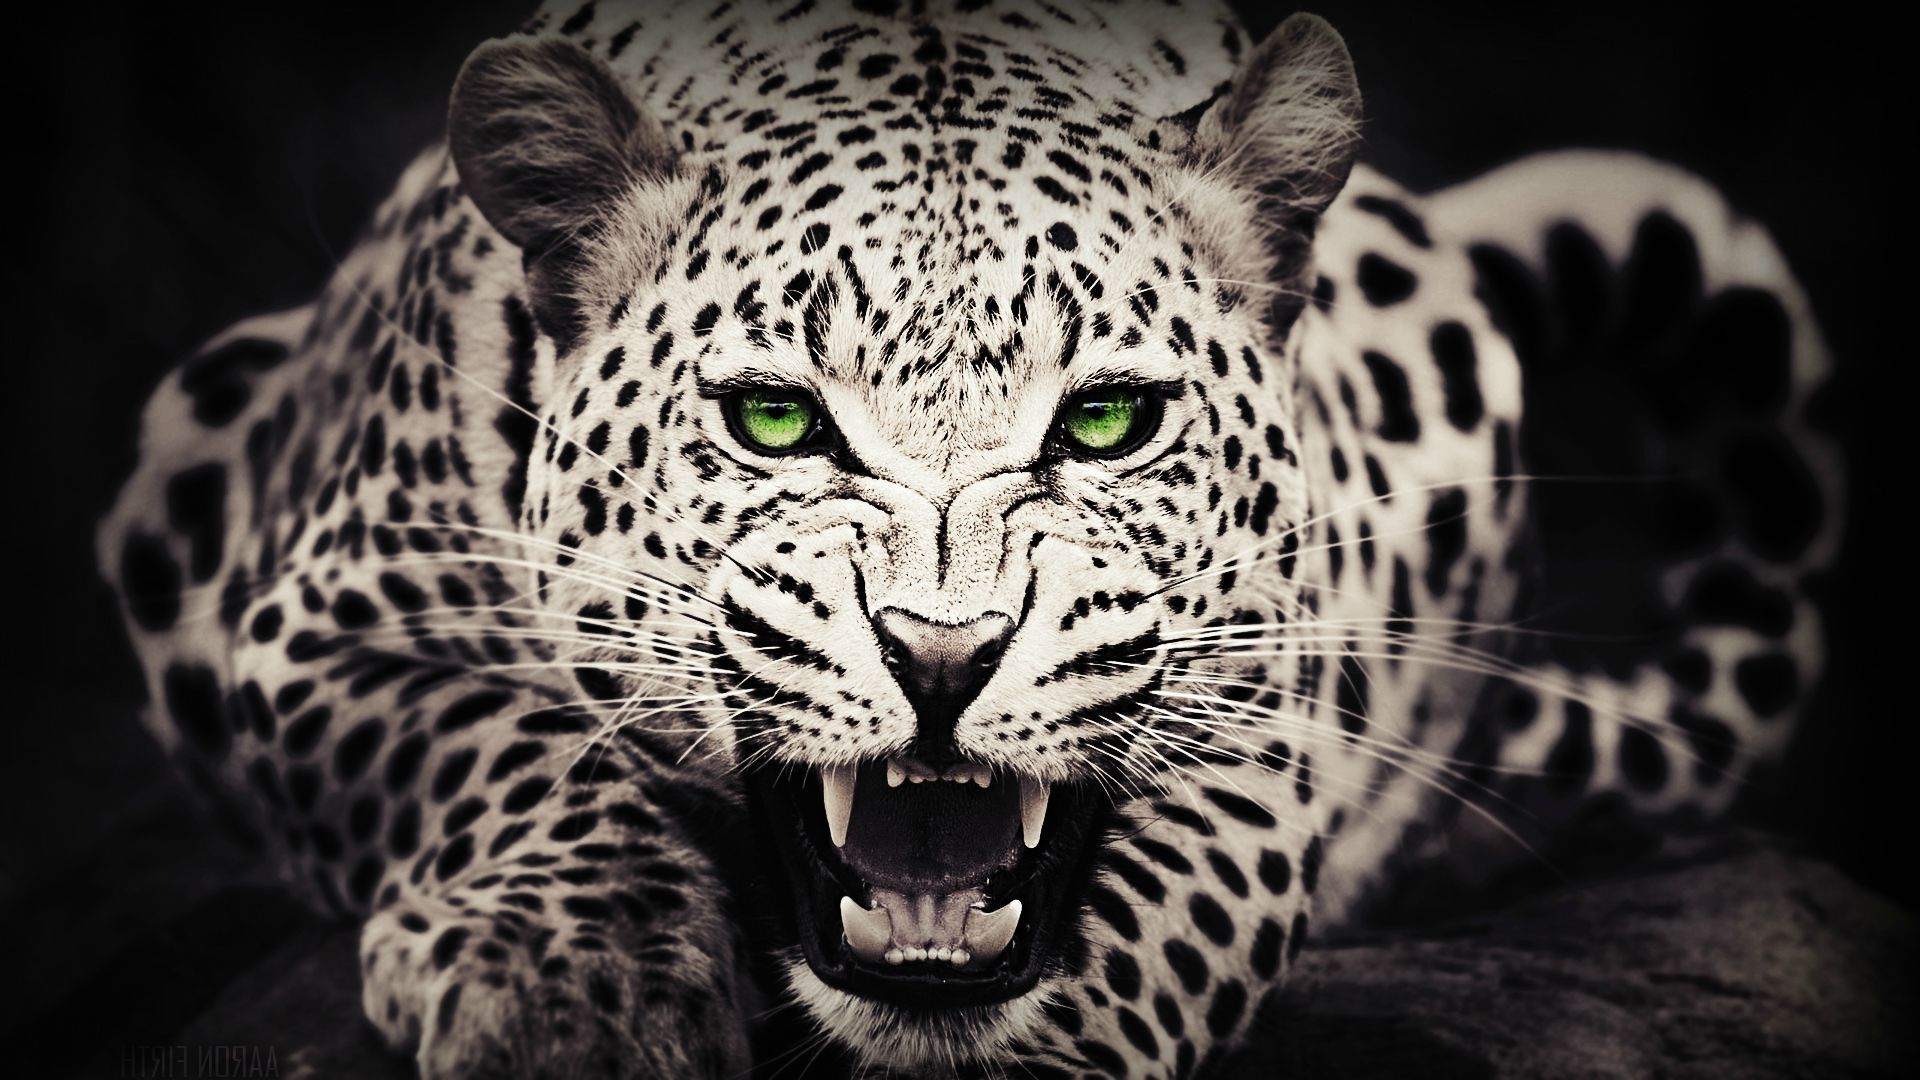 Black White Cheetah Wallpaper Hdwallpapershams Com Cheetah Wallpaper Wild Animal Wallpaper Leopard Wallpaper